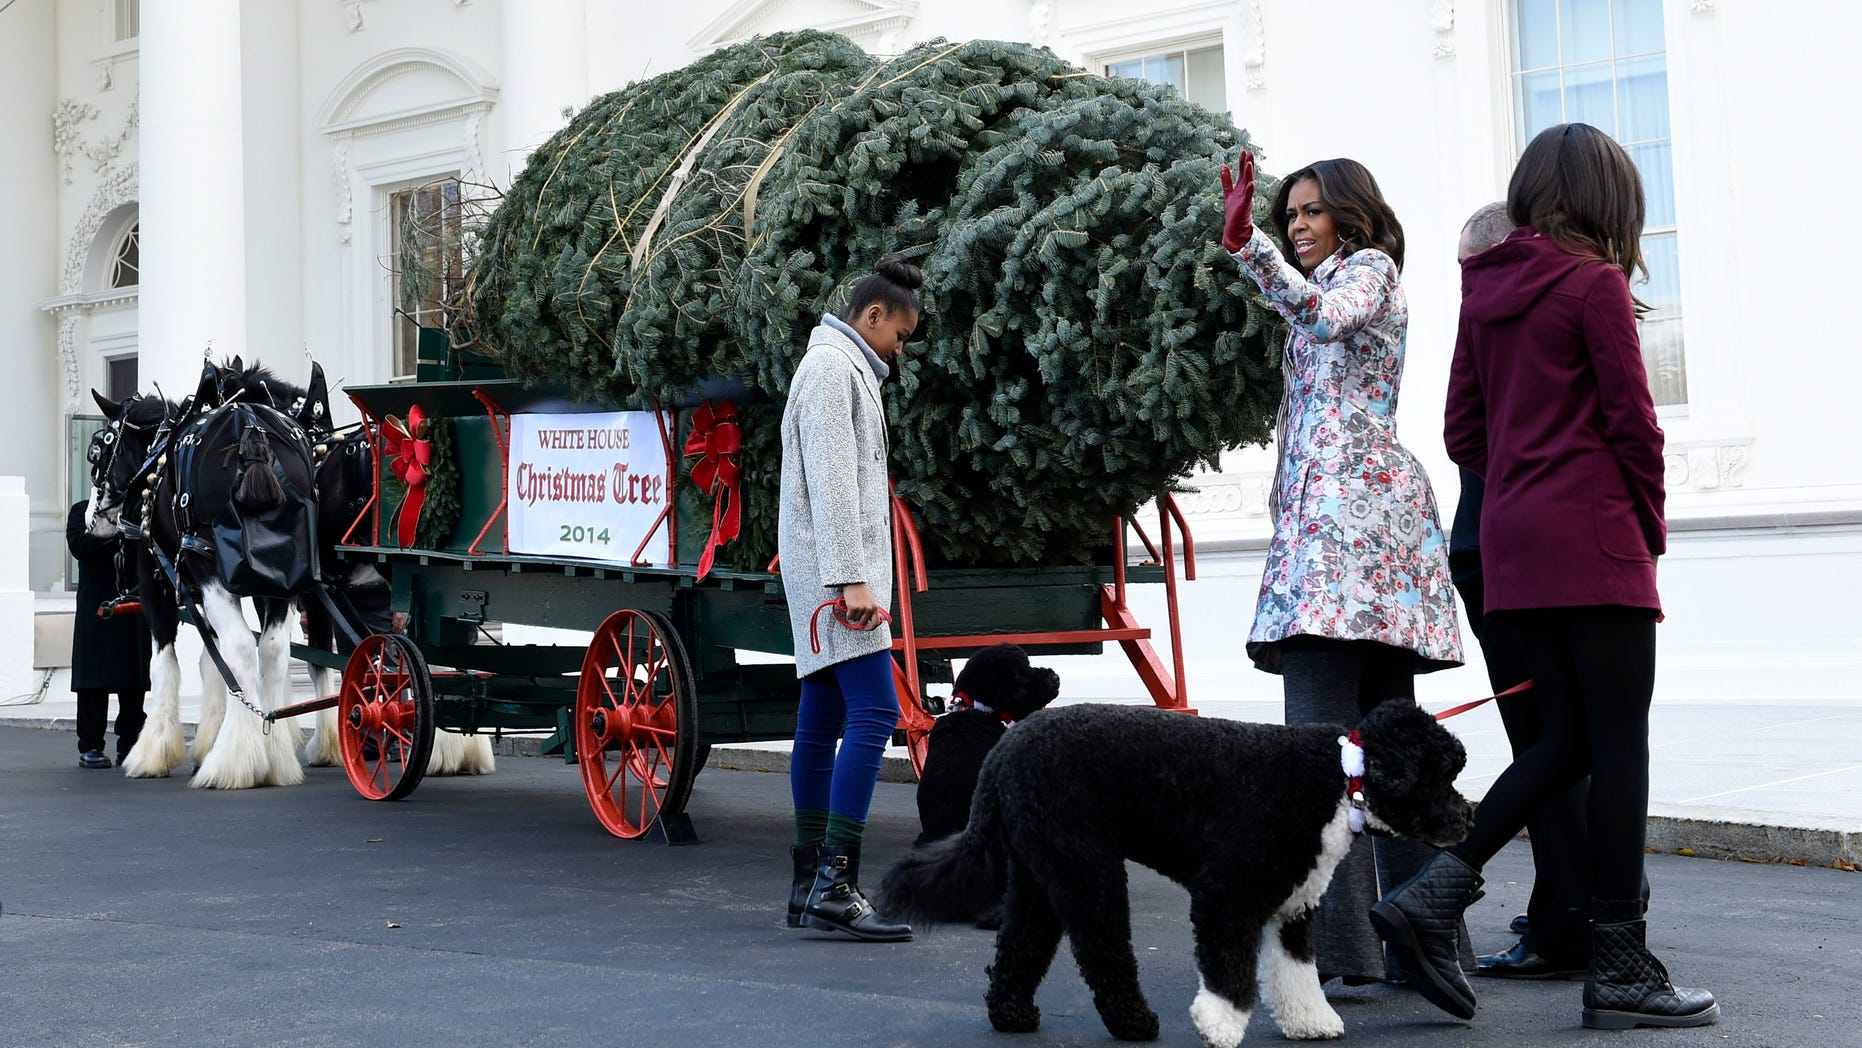 First lady Michelle Obama, second from right, joined by her daughters Sasha Obama, left, and Malia Obama, waves to the press after welcoming the Official White House Christmas Tree to the White House.